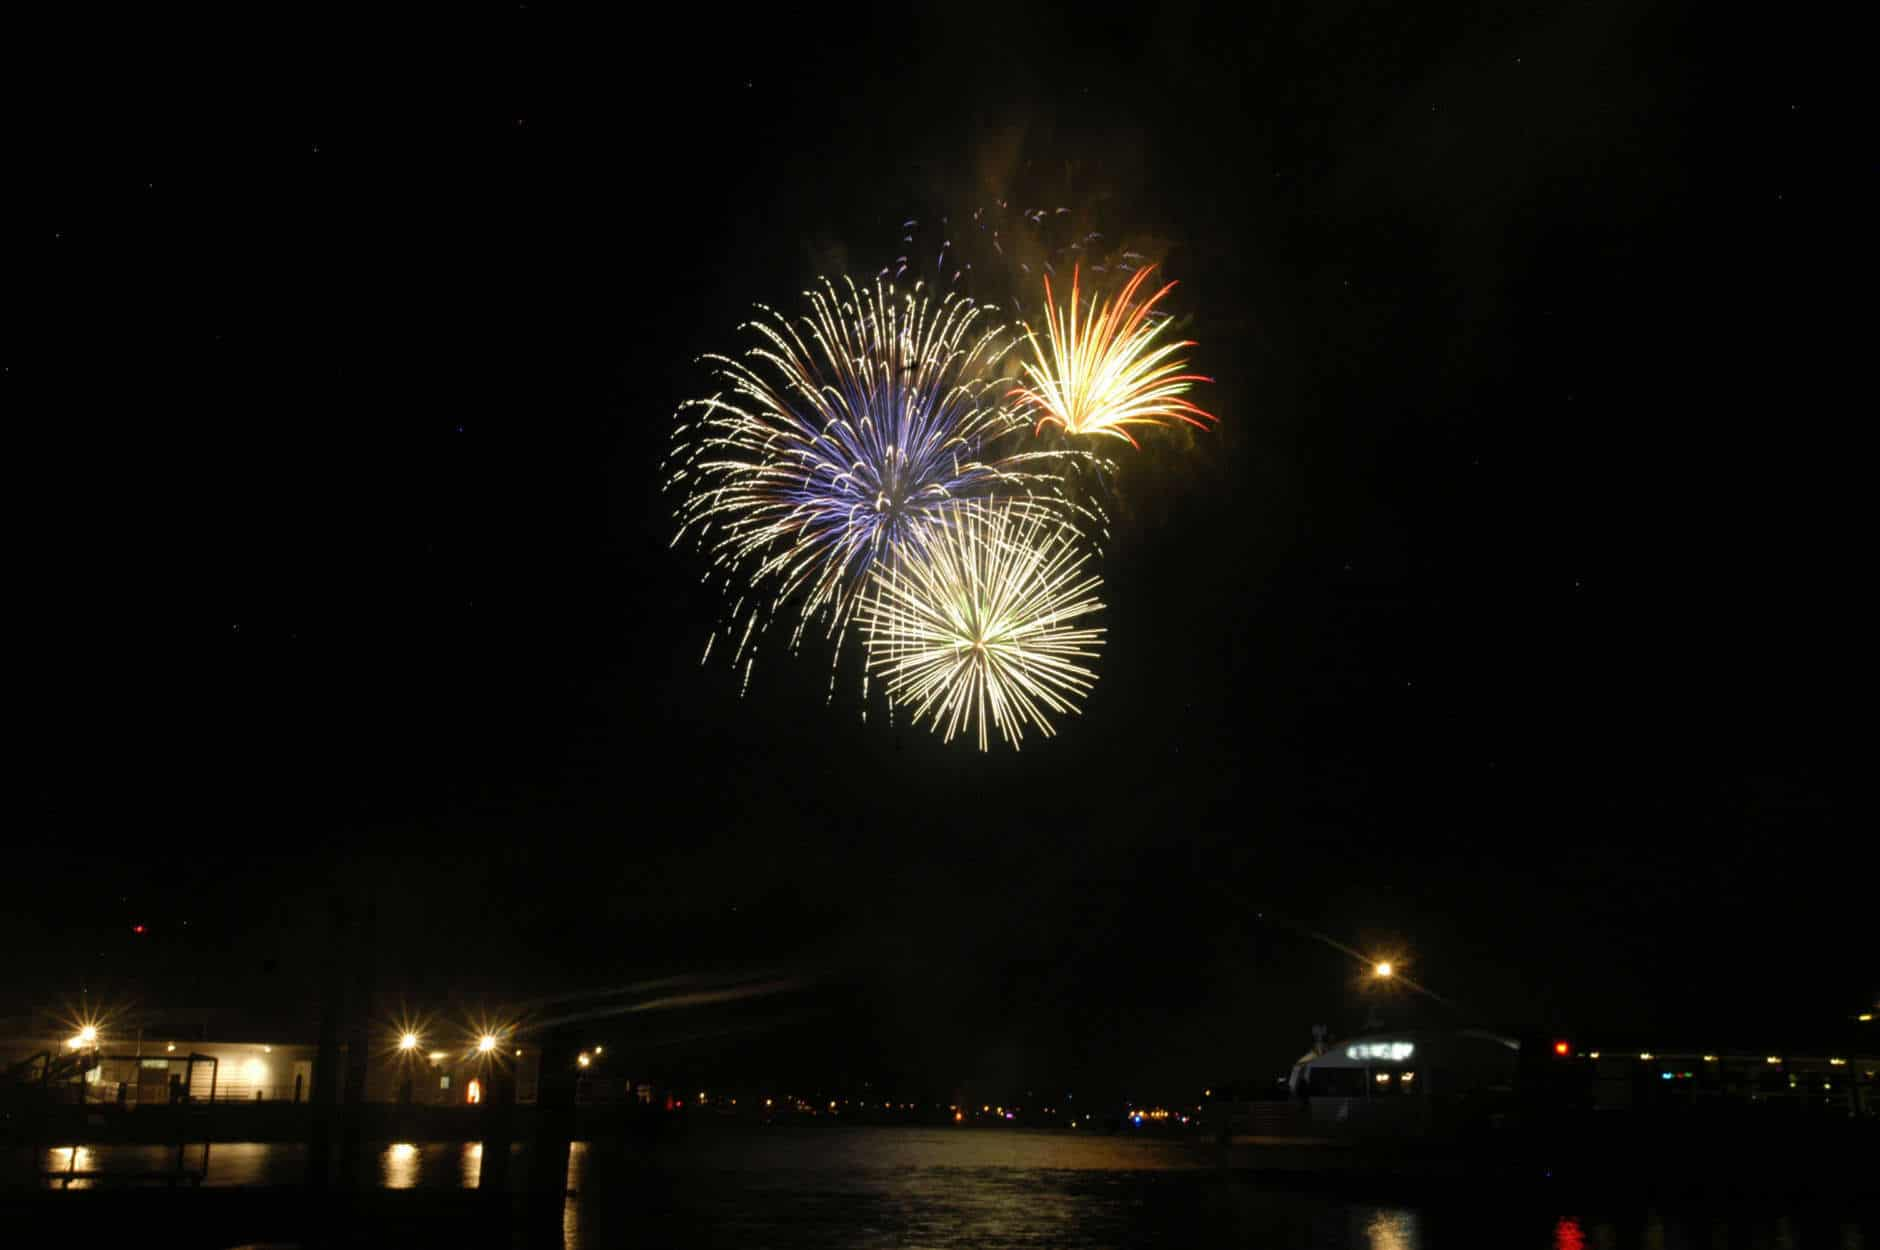 Weather permitting, you can enjoy fireworks at the Wharf during Petapalooza on Saturday, April 7. (Courtesy National Cherry Blossom Festival)